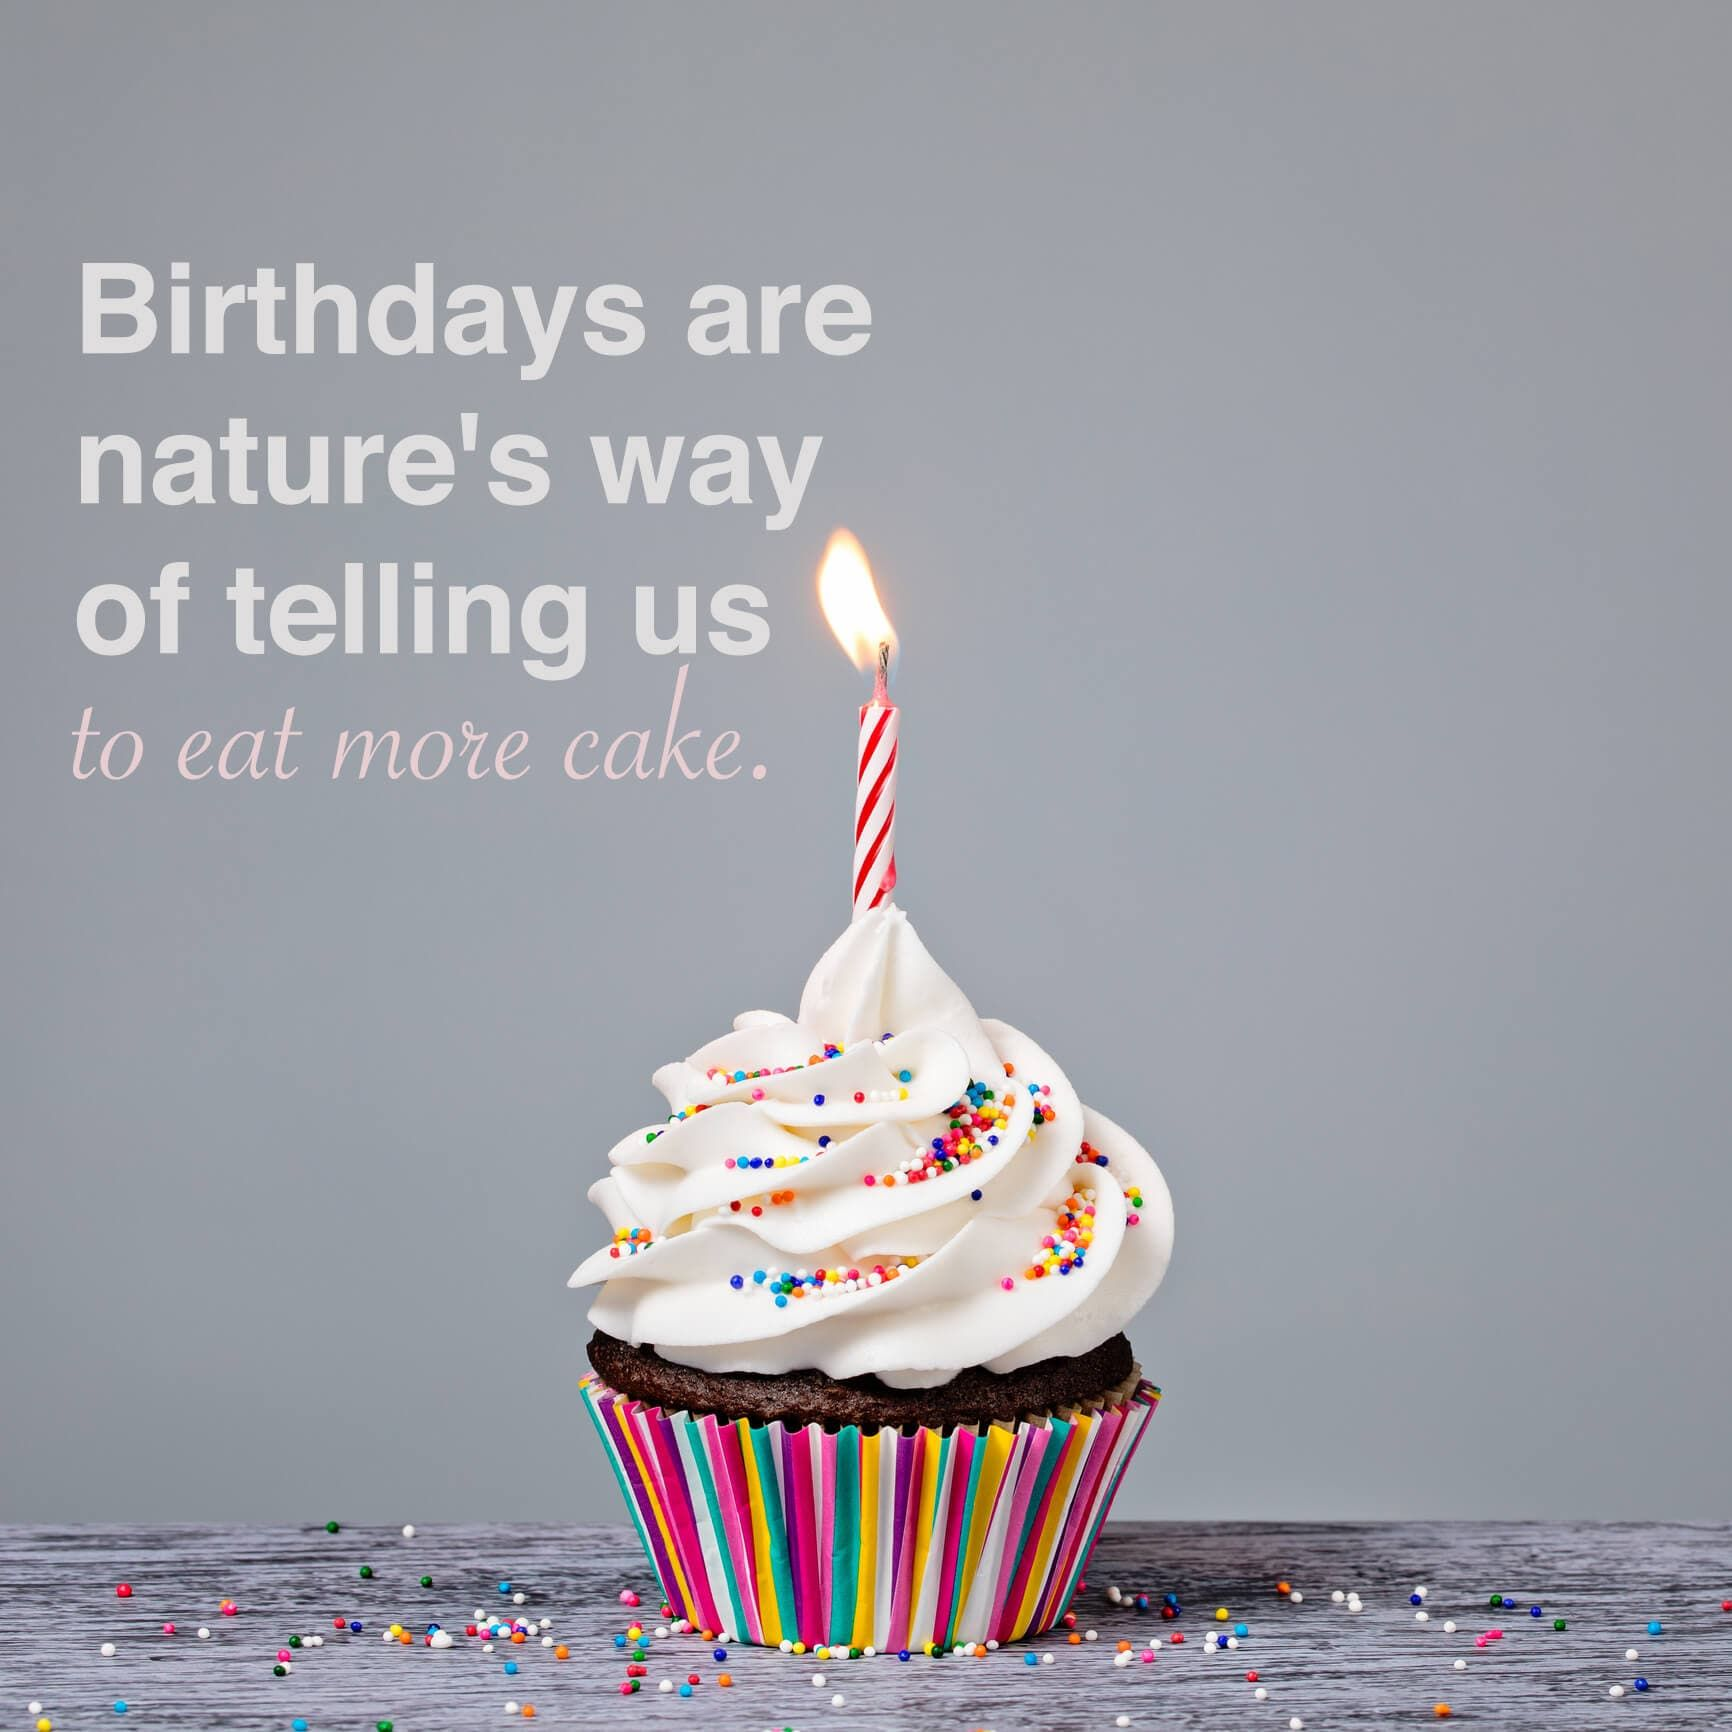 The Best Happy Birthday Quotes To Help You Celebrate Shutterfly Birthday Captions Birthday Instagram Captions 20th Birthday Captions